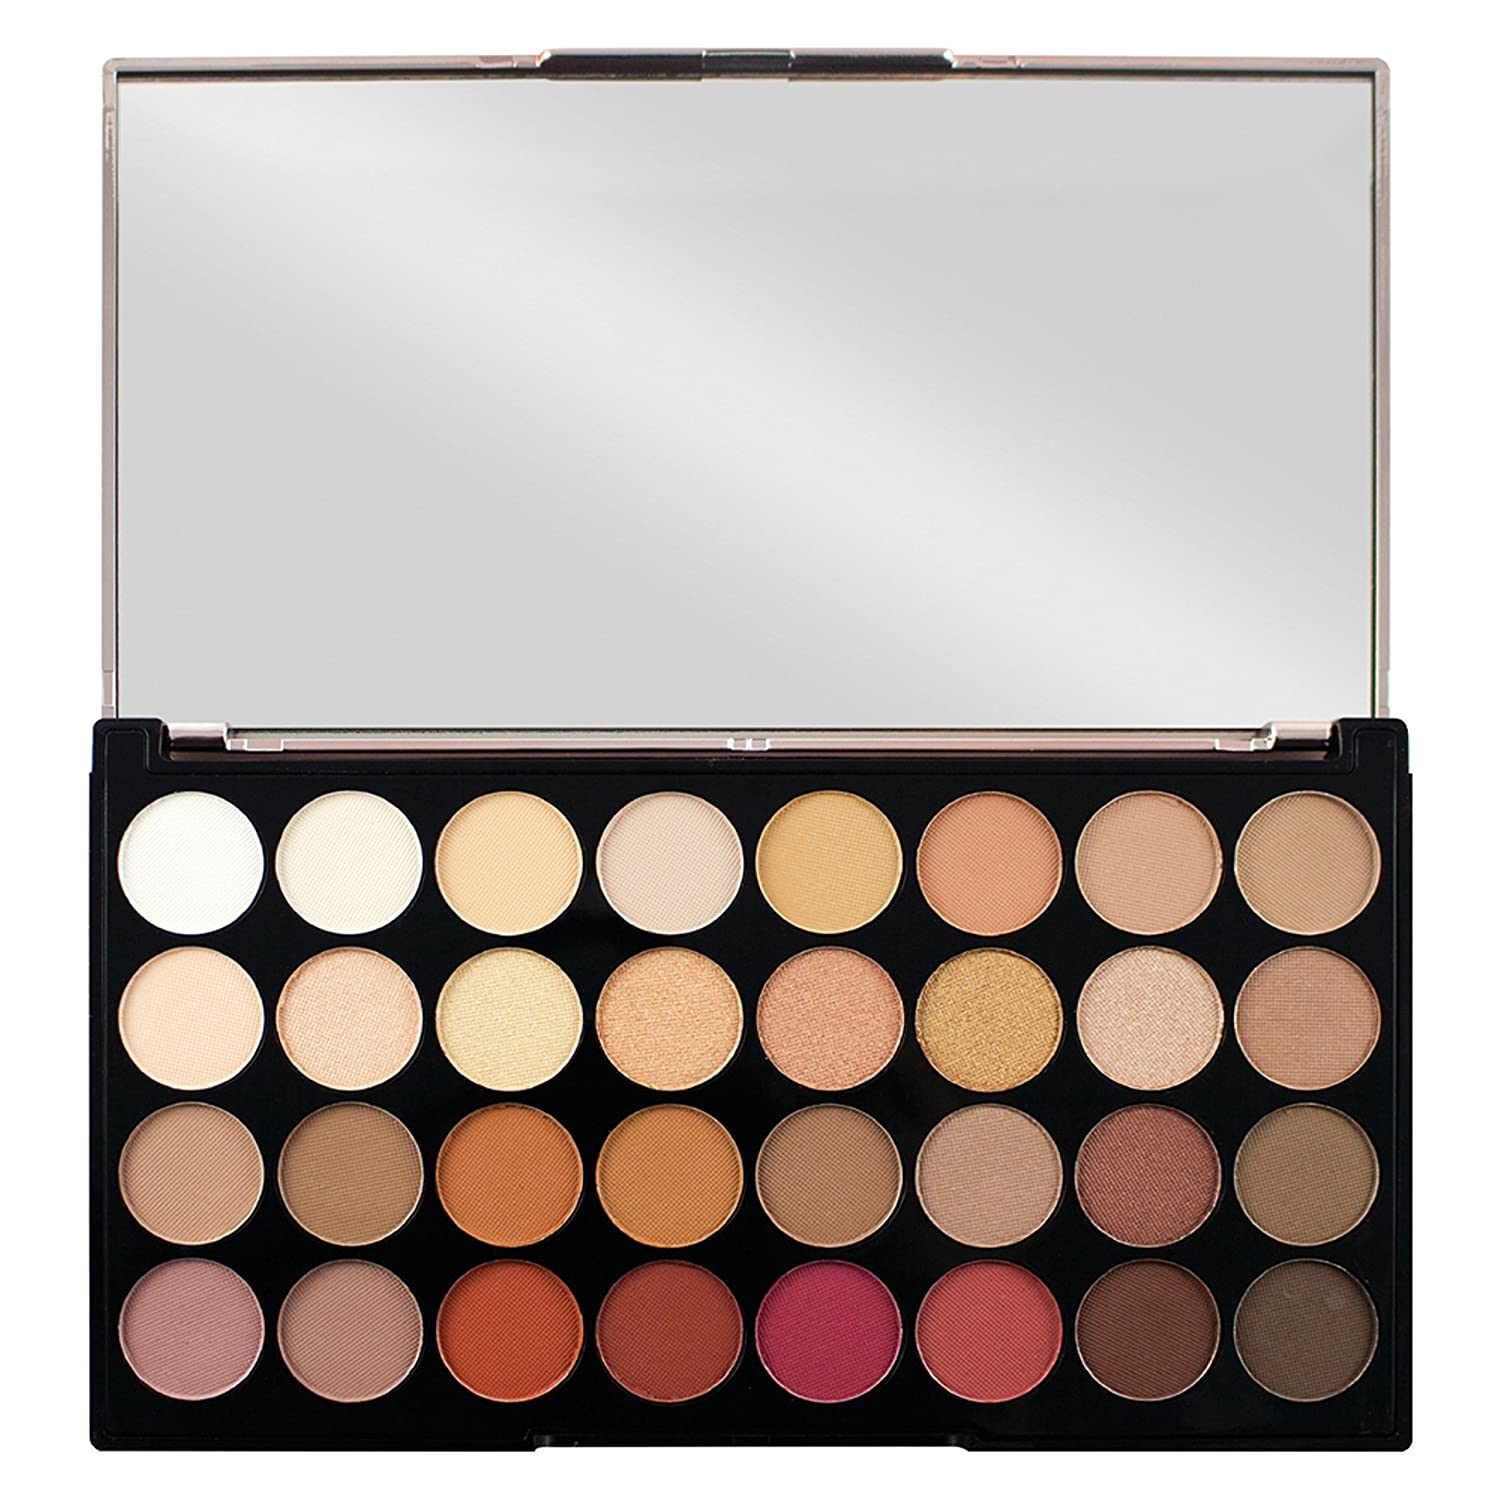 Make Up Revolution London Ultra 32 Eyeshadow Palette, Multi Color, 16g